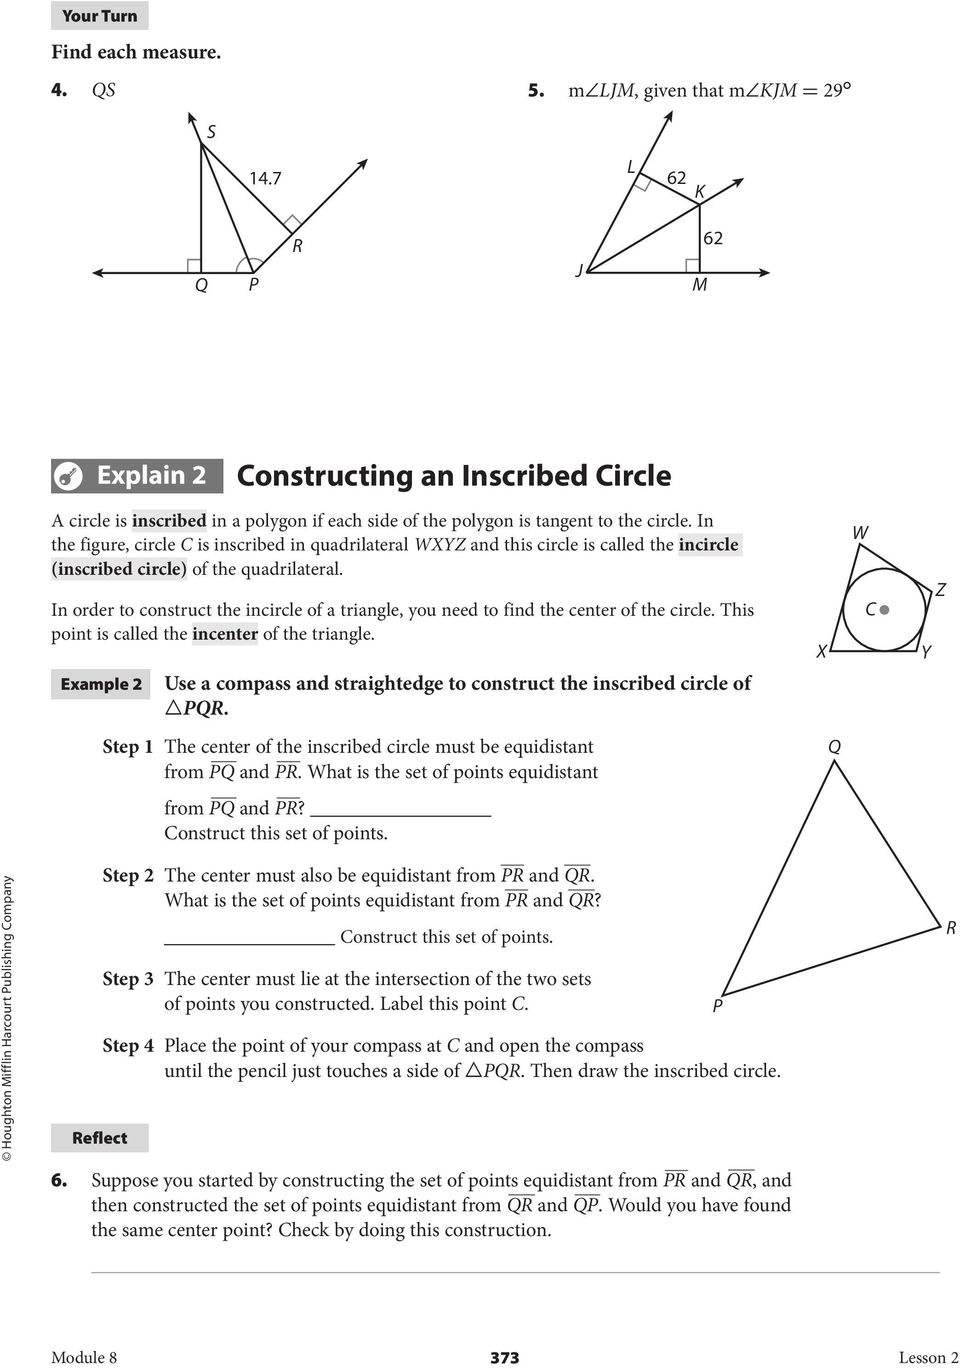 In order to construct the incircle of a triangle, you need to find the center of the circle. This point is called the incenter of the triangle.